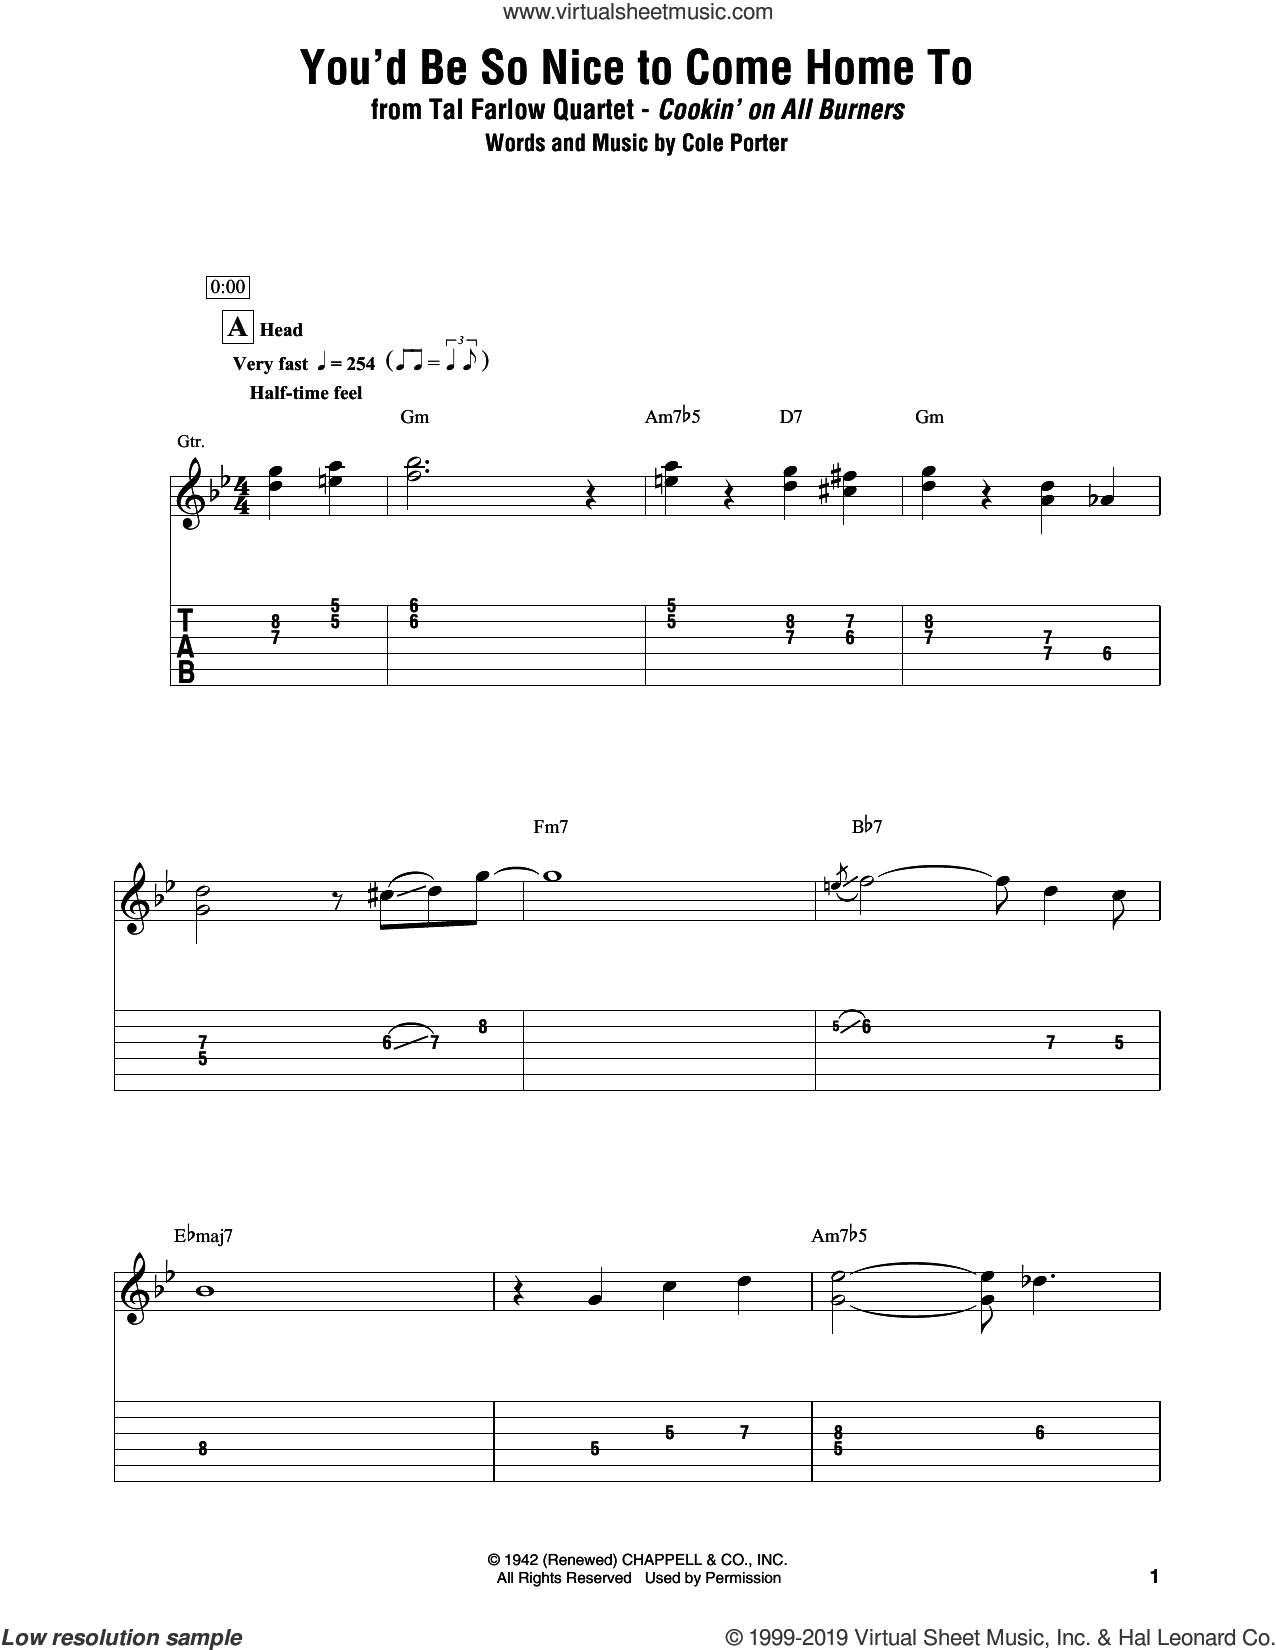 You'd Be So Nice To Come Home To sheet music for electric guitar (transcription) by Tal Farlow Quartet and Cole Porter, intermediate skill level